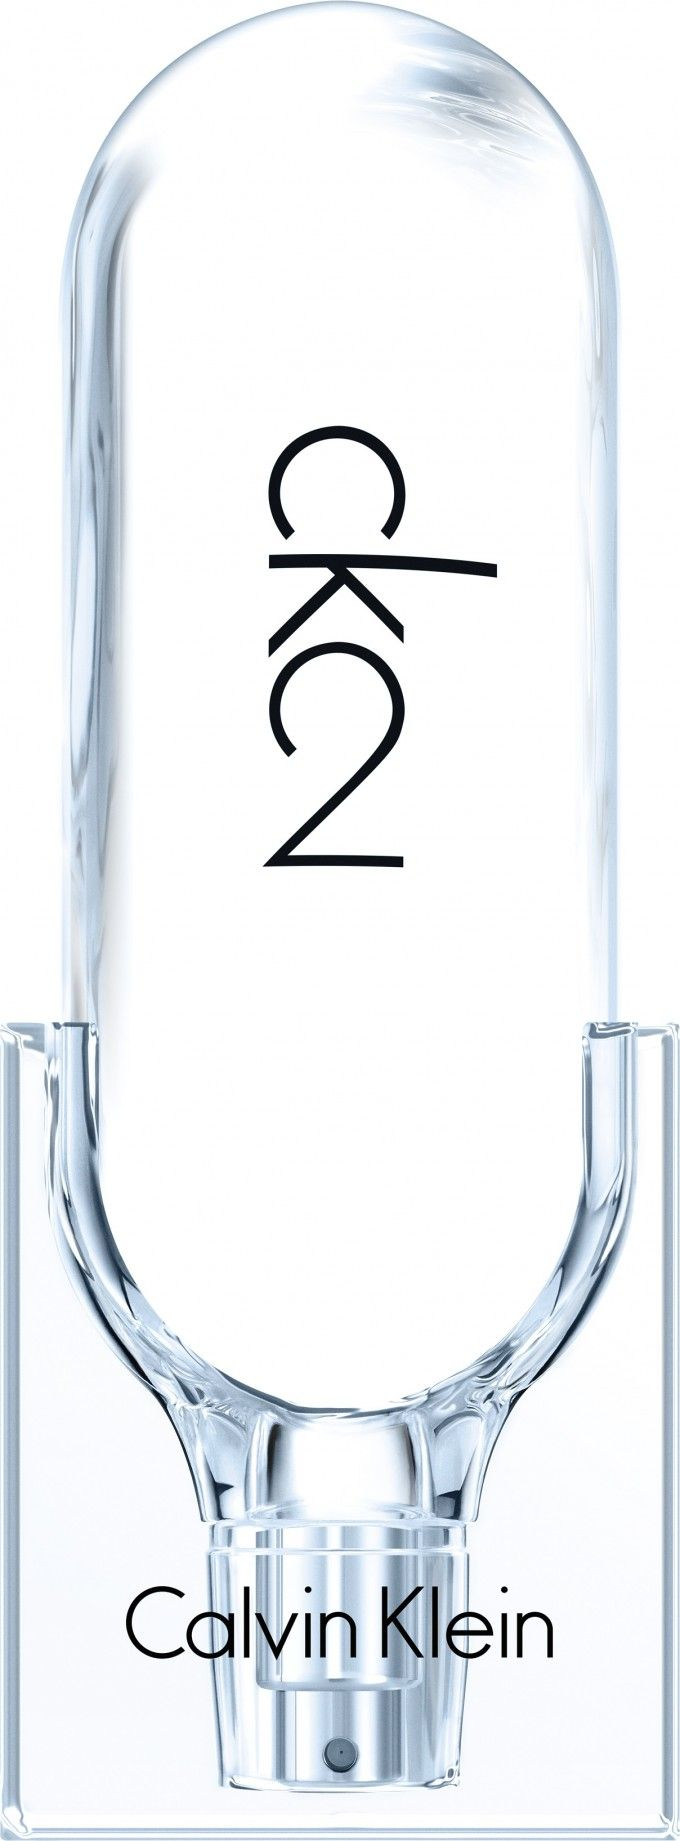 Calvin Klein will launch CK2, a new unisex follow-up to 1994's CK One, this December – exclusive to travel retail for two months before its global launch in 2016.